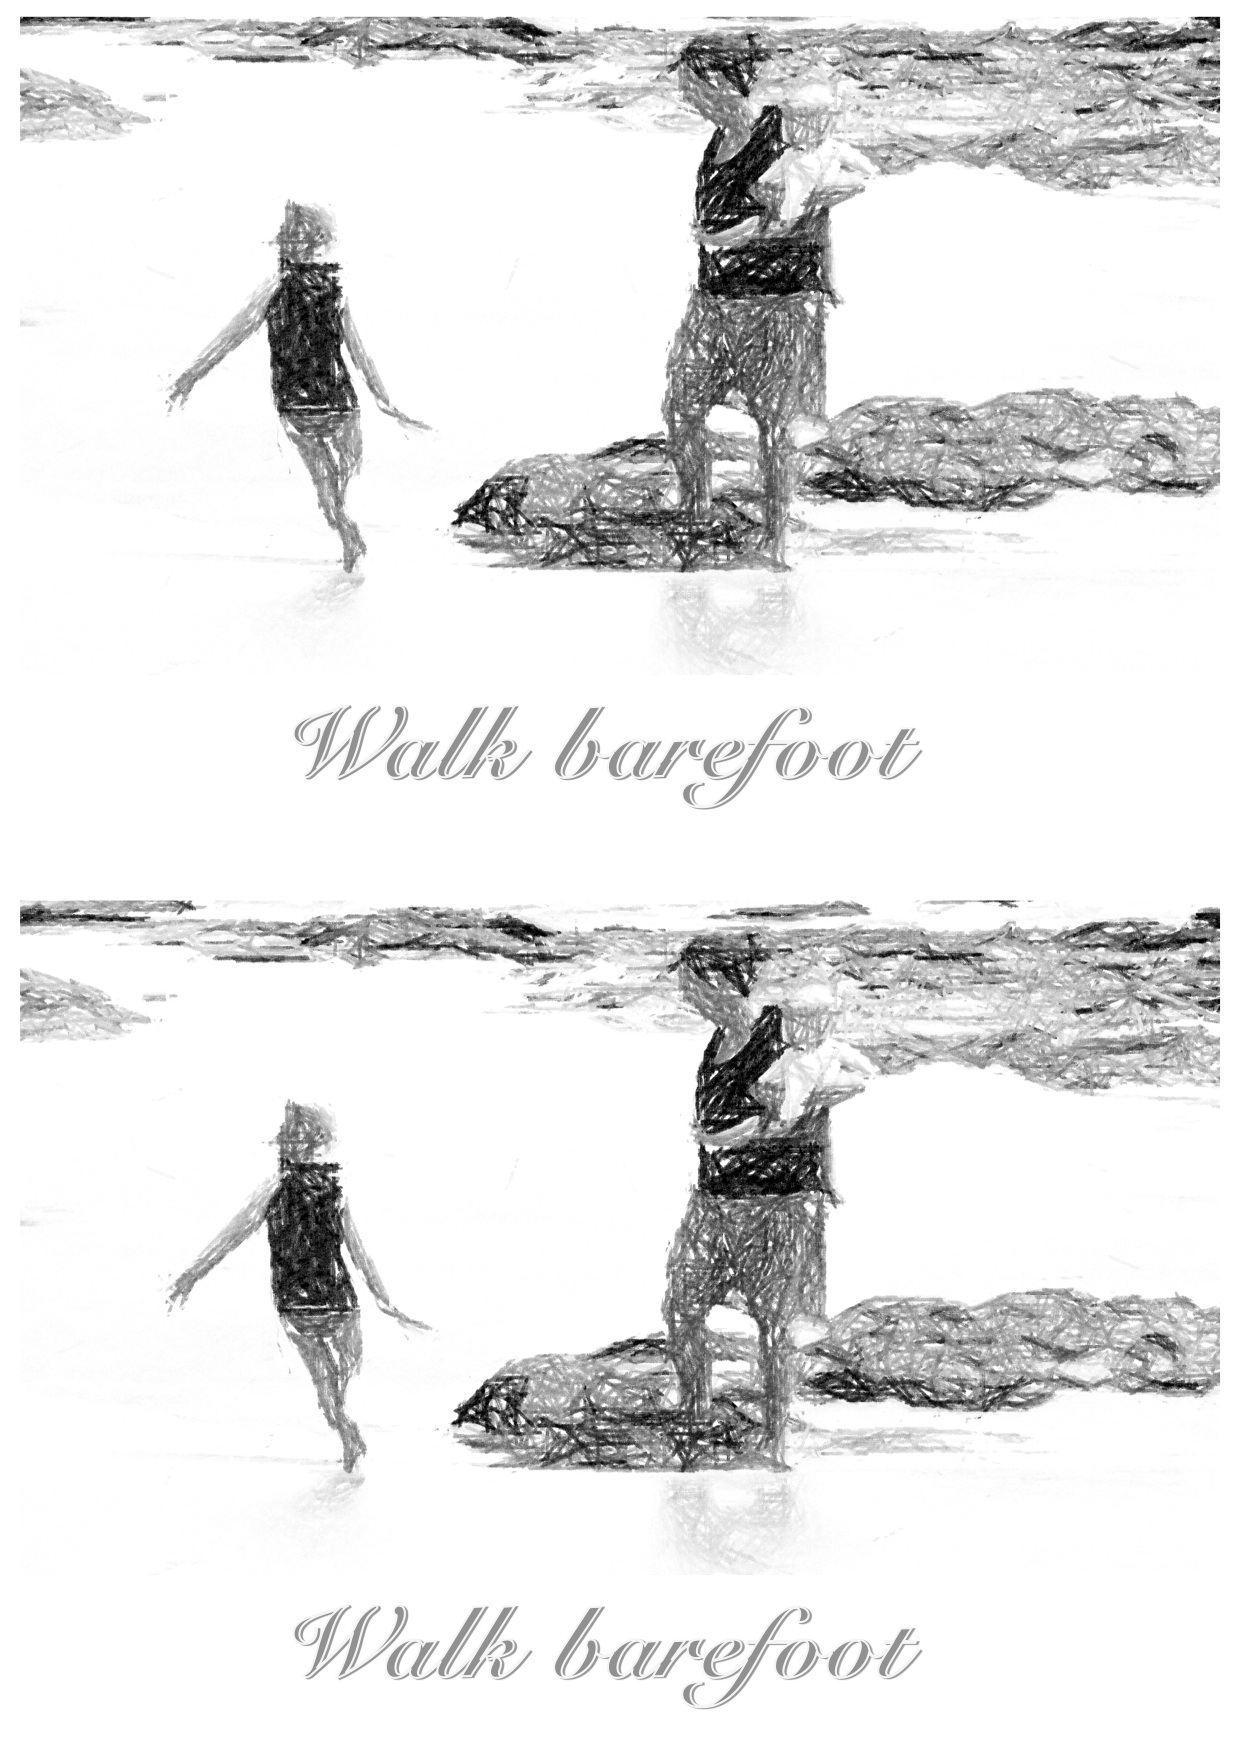 GO BAREFOOT NOW AND THEN